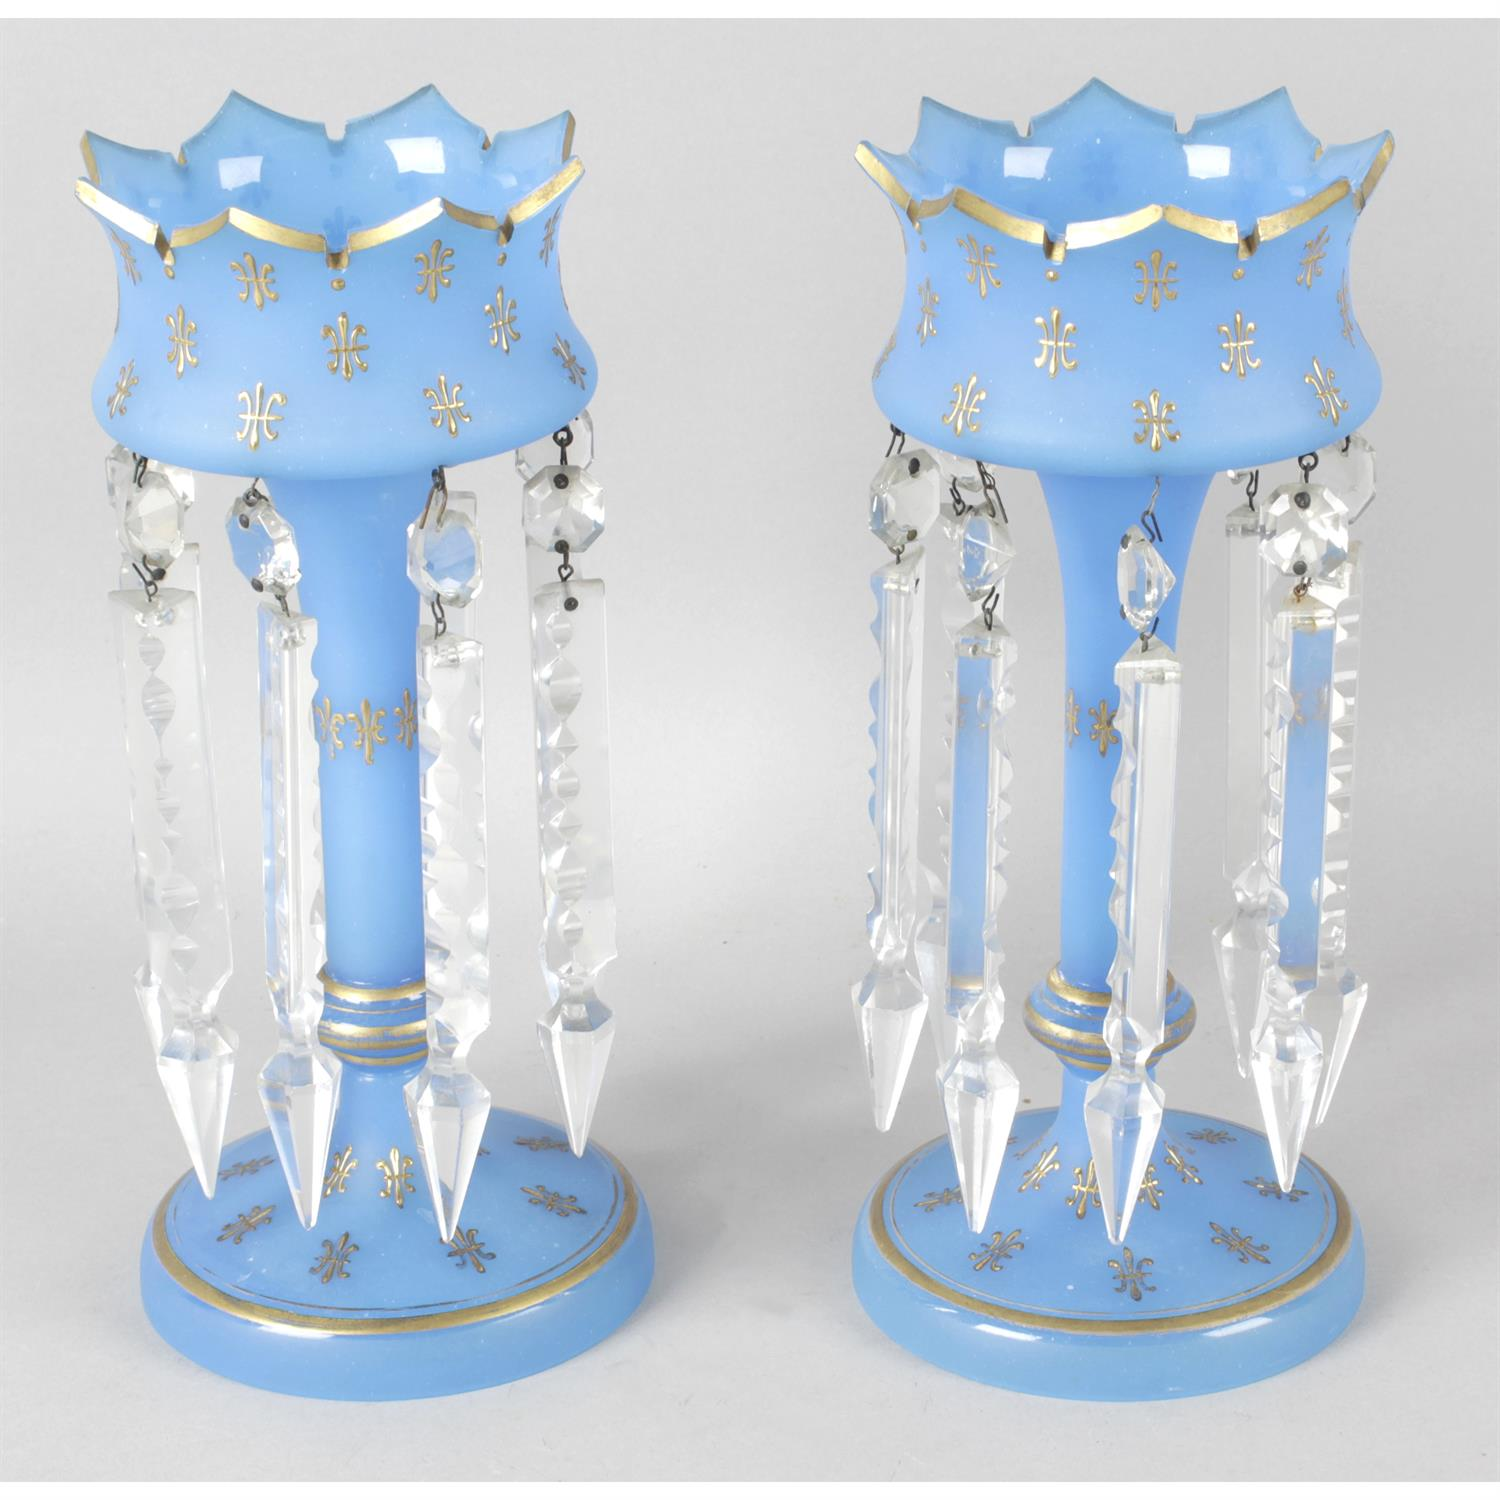 A pair of late 19th century blue glass lustre vases.